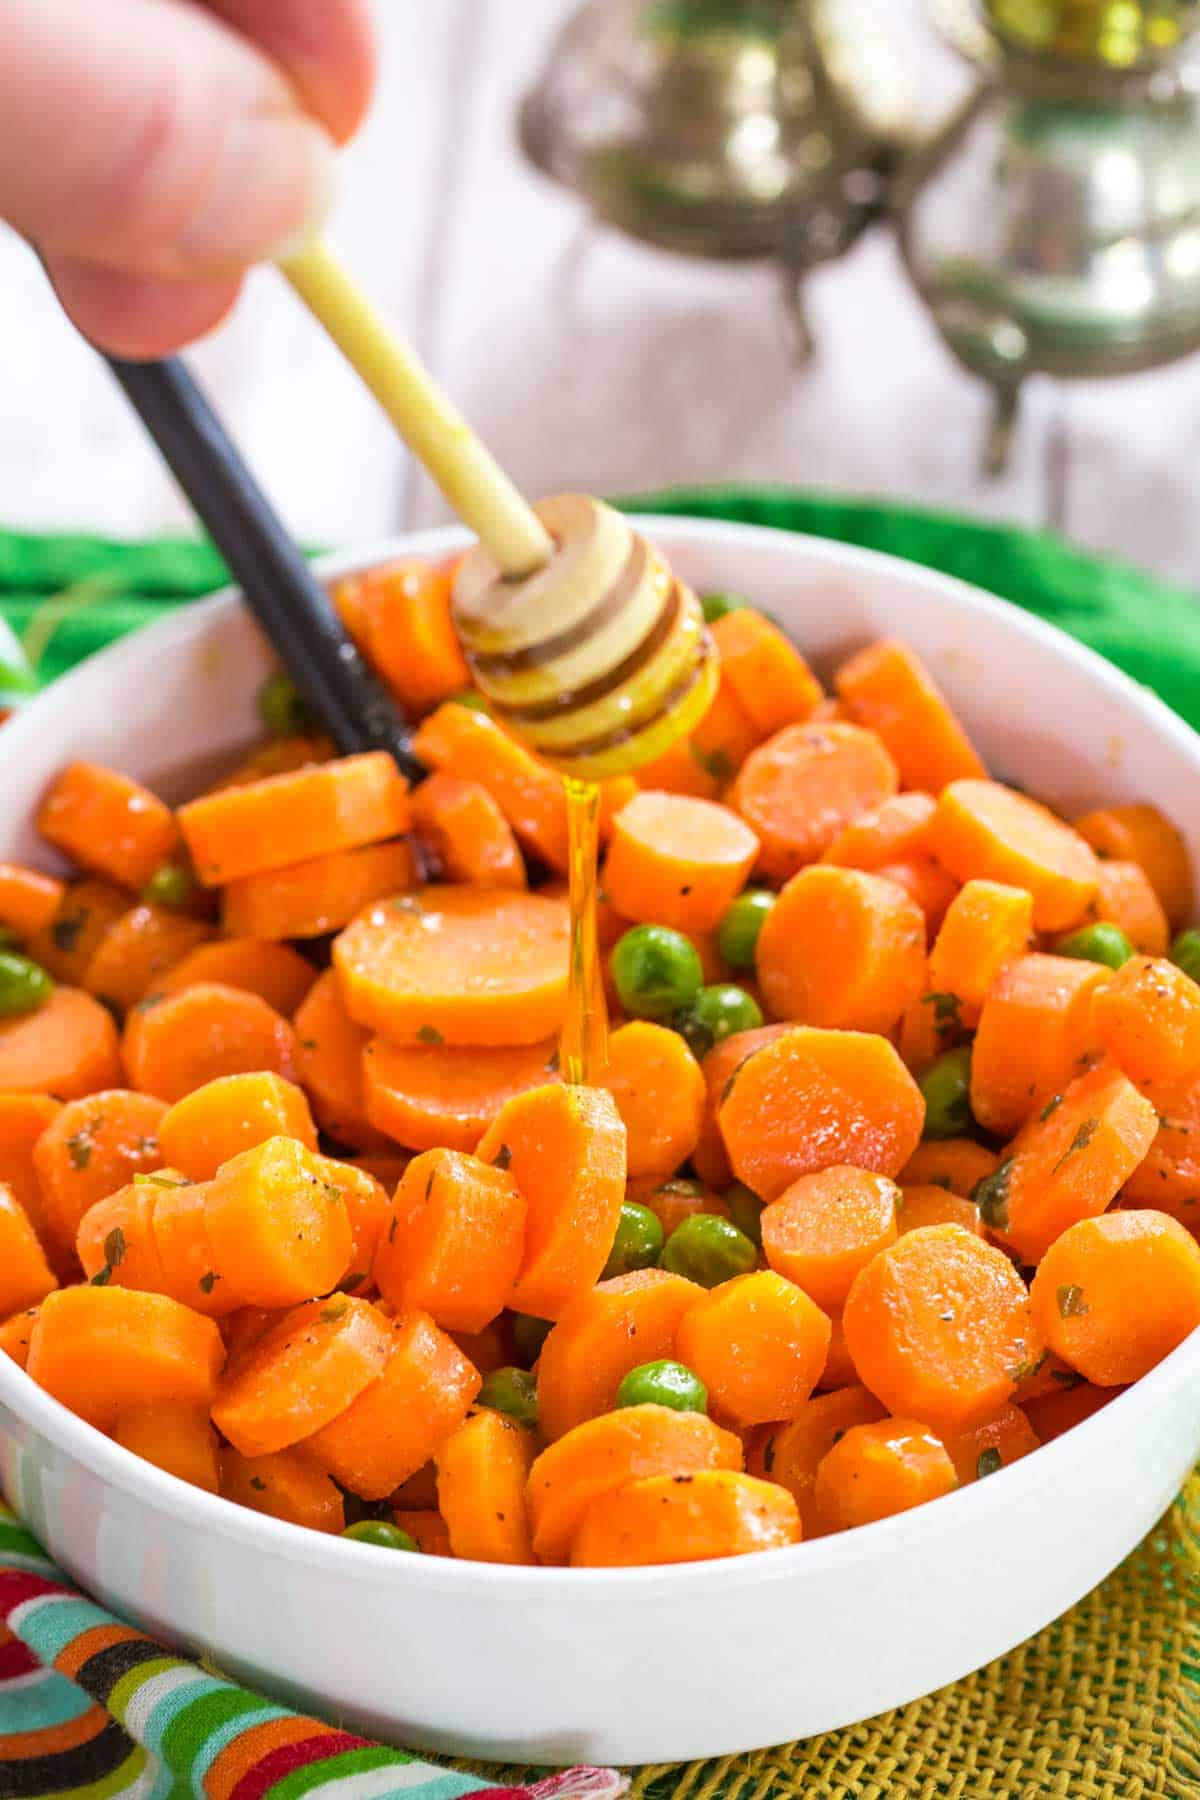 using a honey dipper to drizzle honey over a bowl of peas and carrots